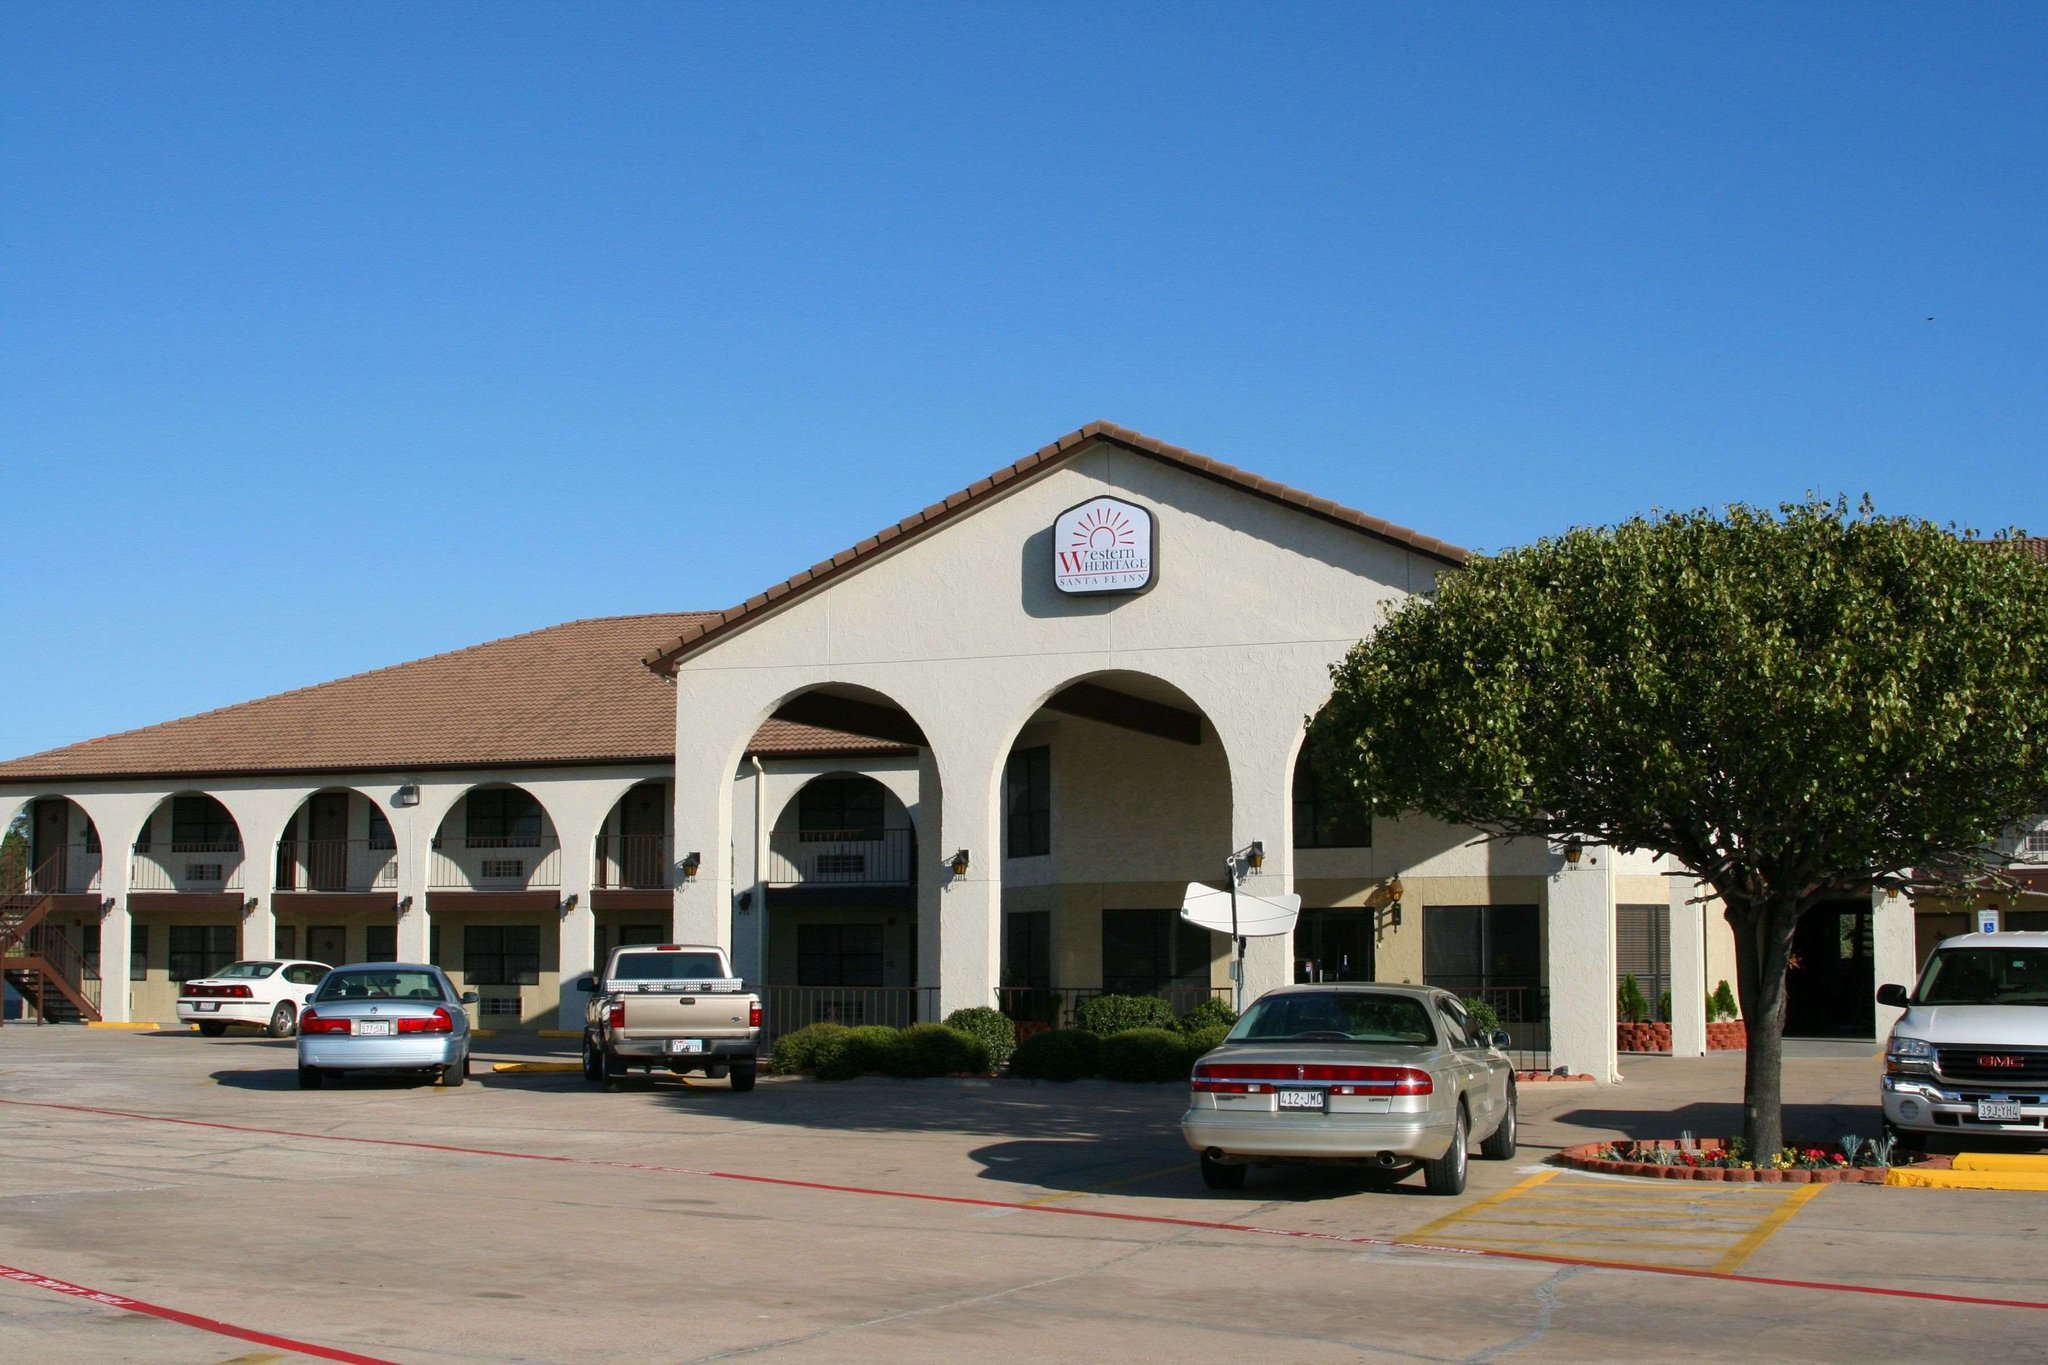 Weatherford Heritage Inn